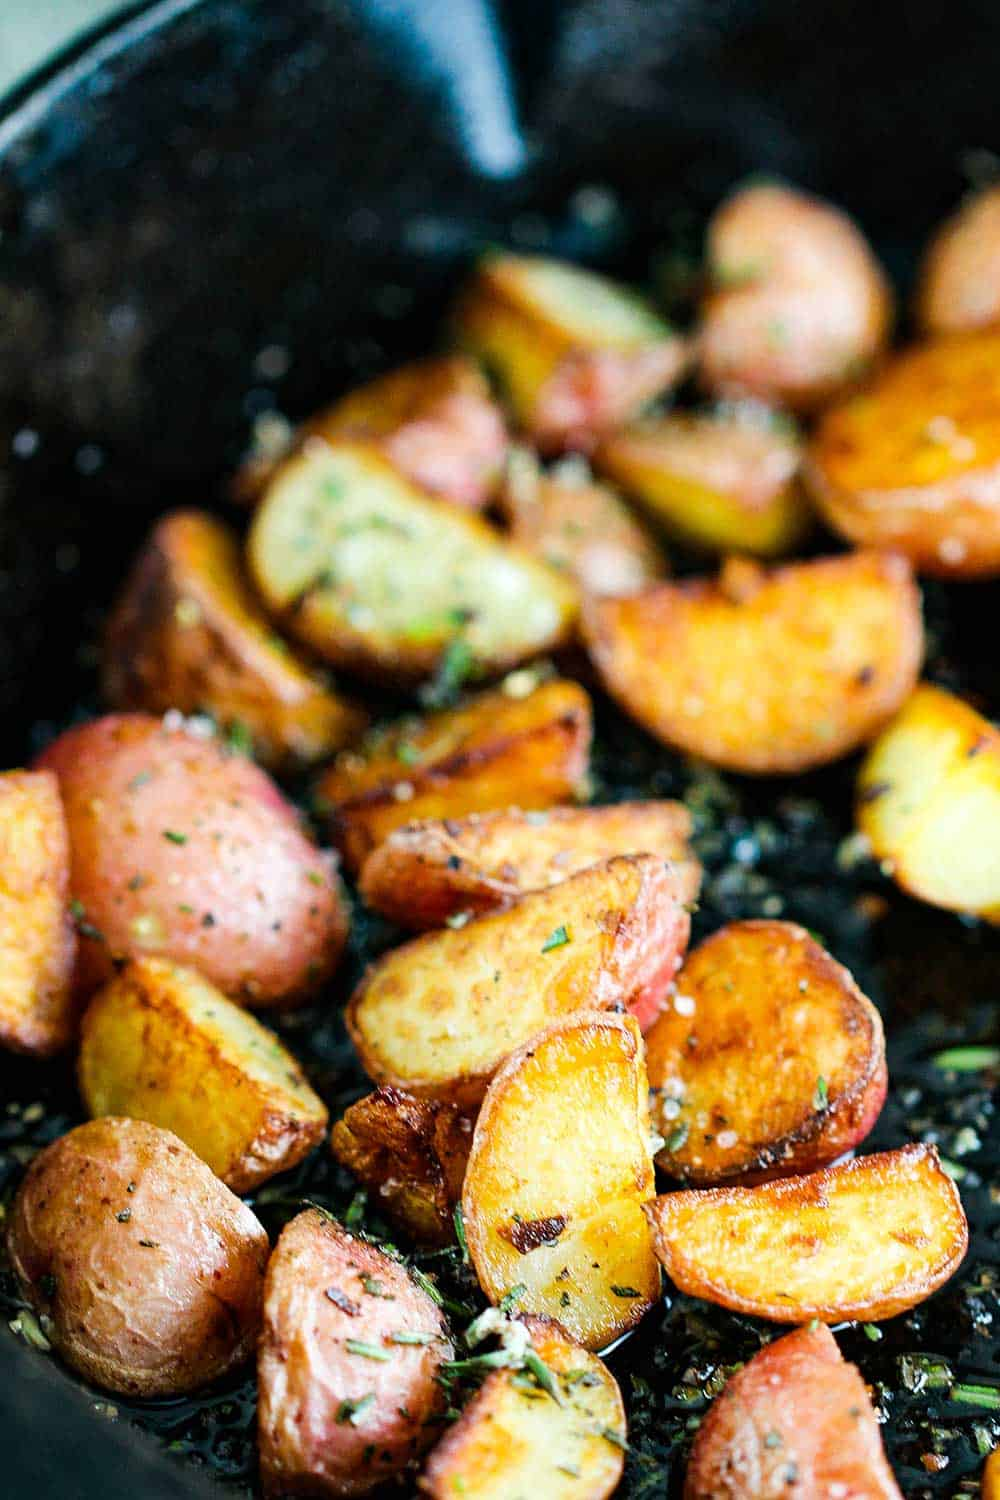 Crispy baby new potatoes in a cast iron skillet